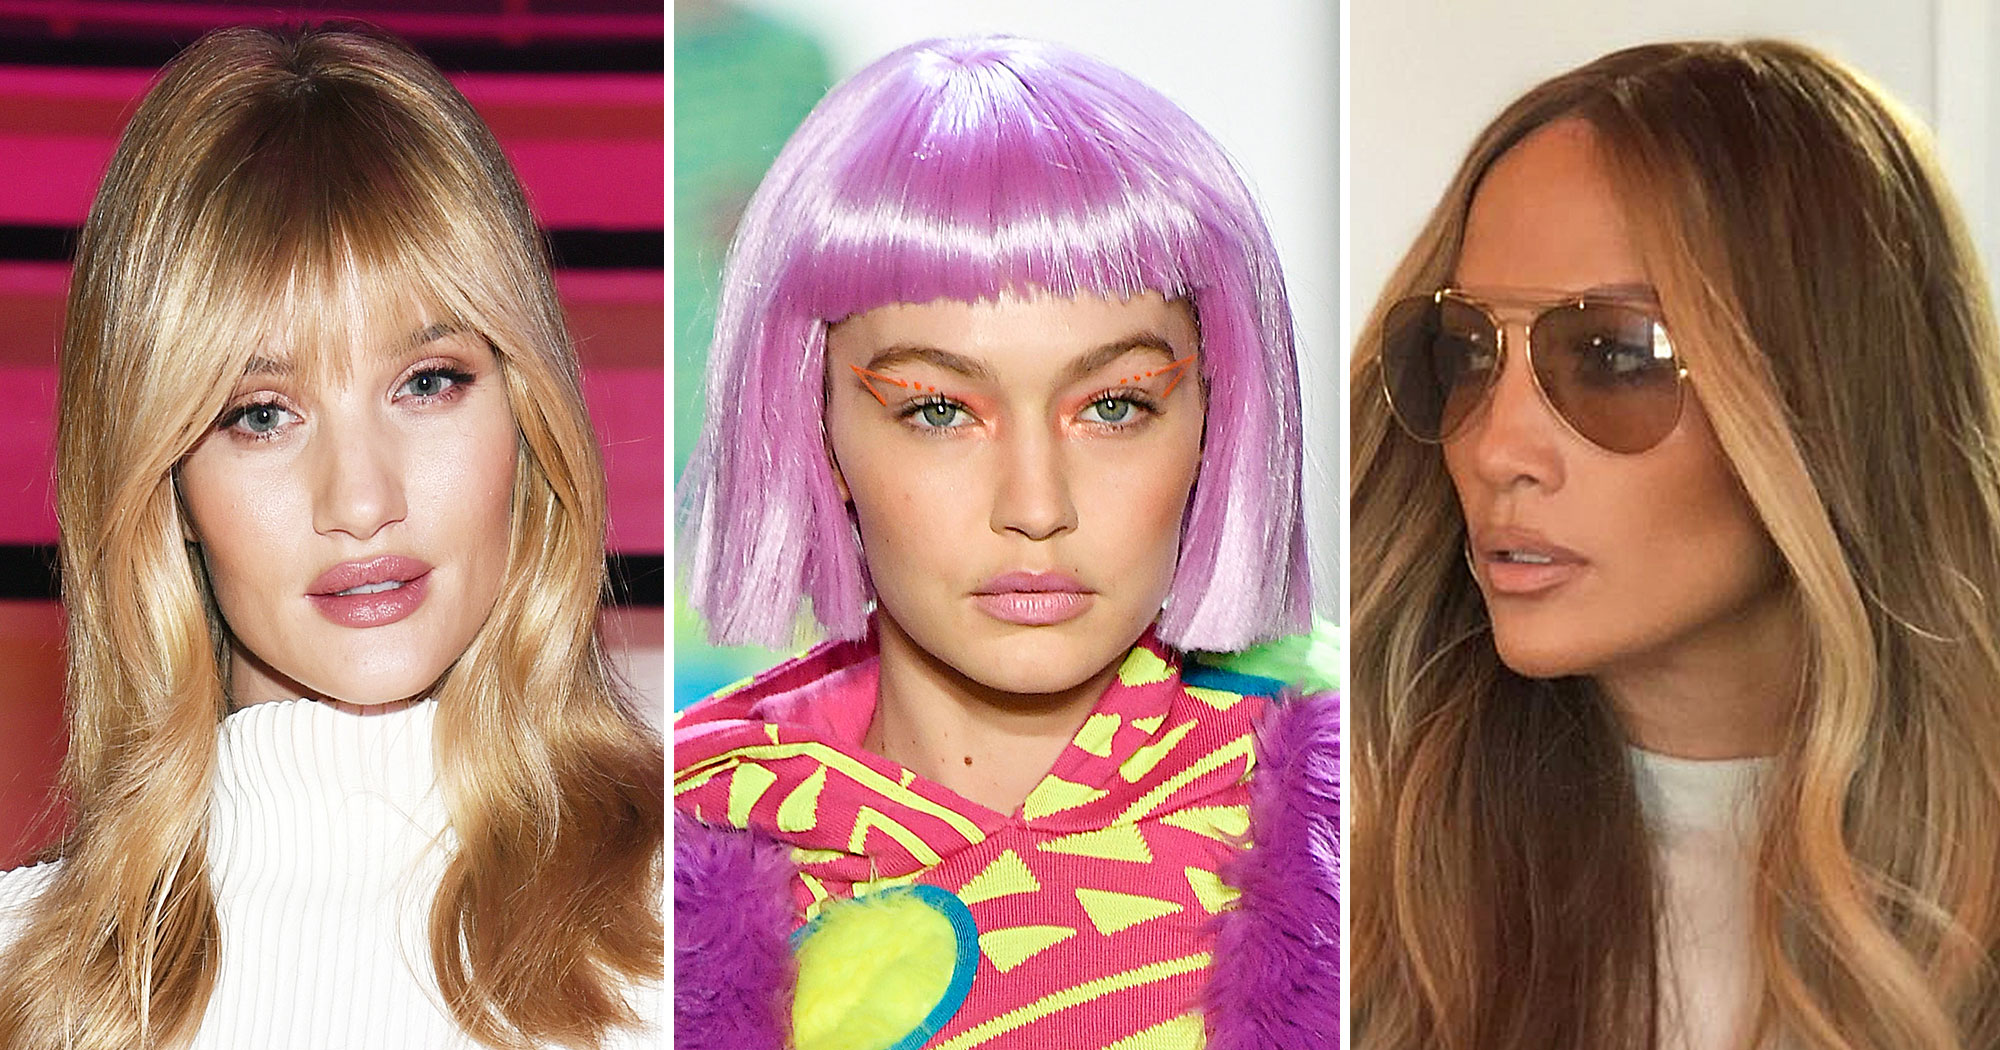 Wigging Out! Stars Are Mixing Up Their Hair Looks With Wigs